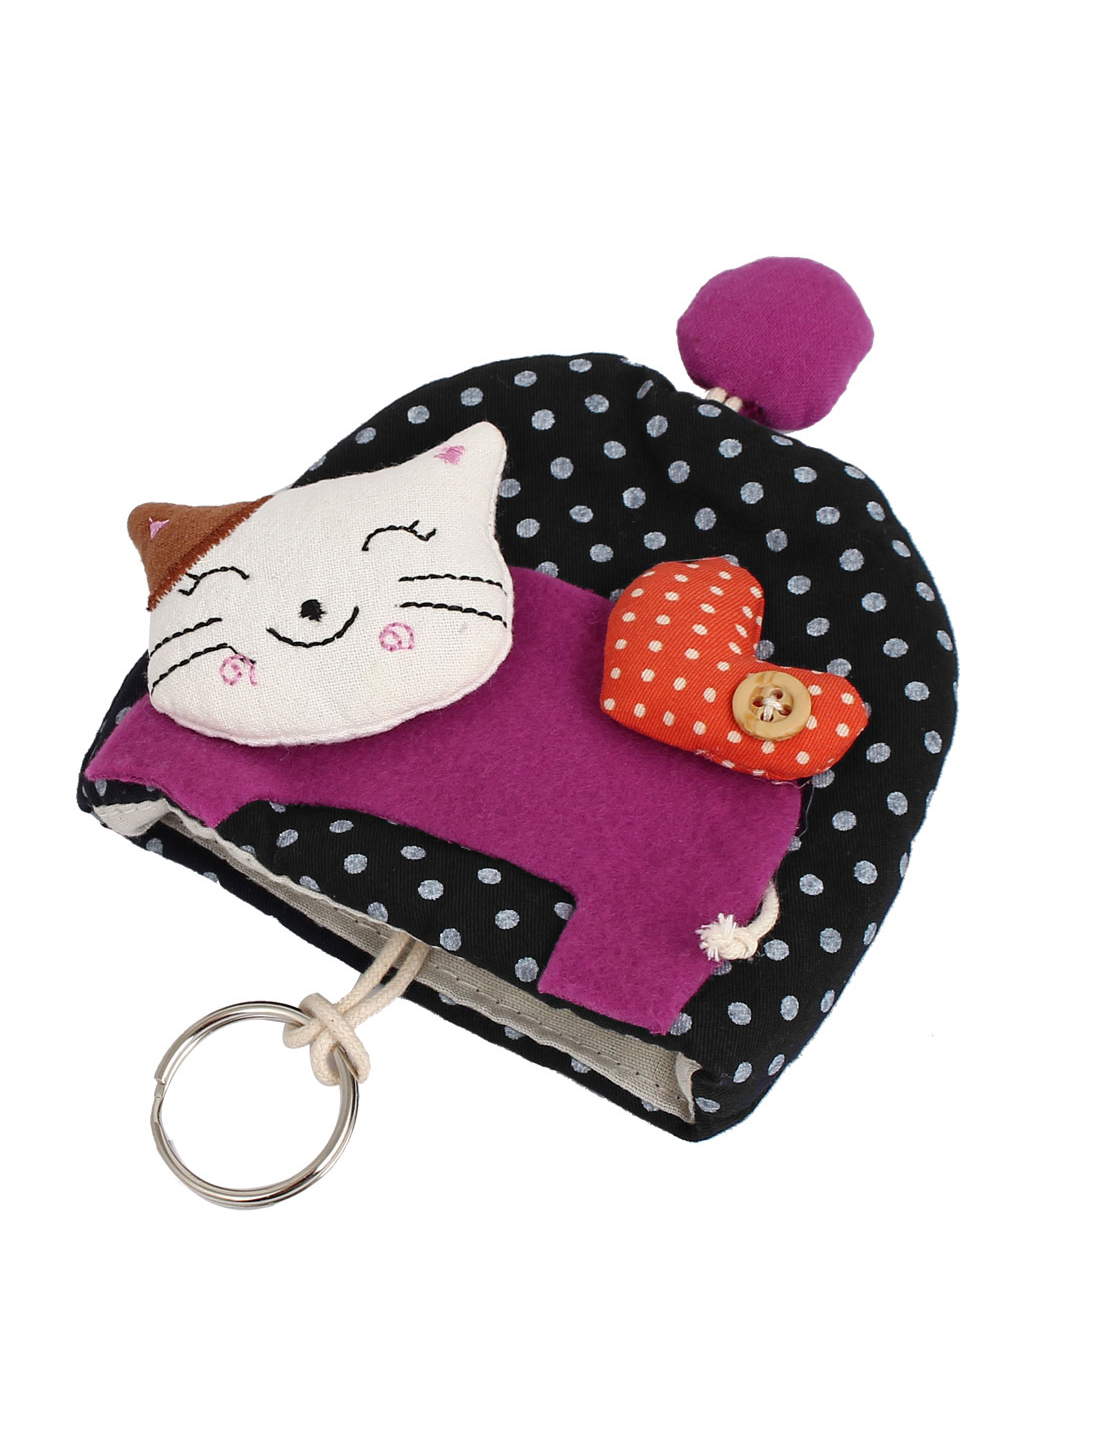 Lady Split Ring Strap Dot Pattern Cloth Cat Decor Zip Up Coin Key Purse Bag Wallet Pouch Dark Blue